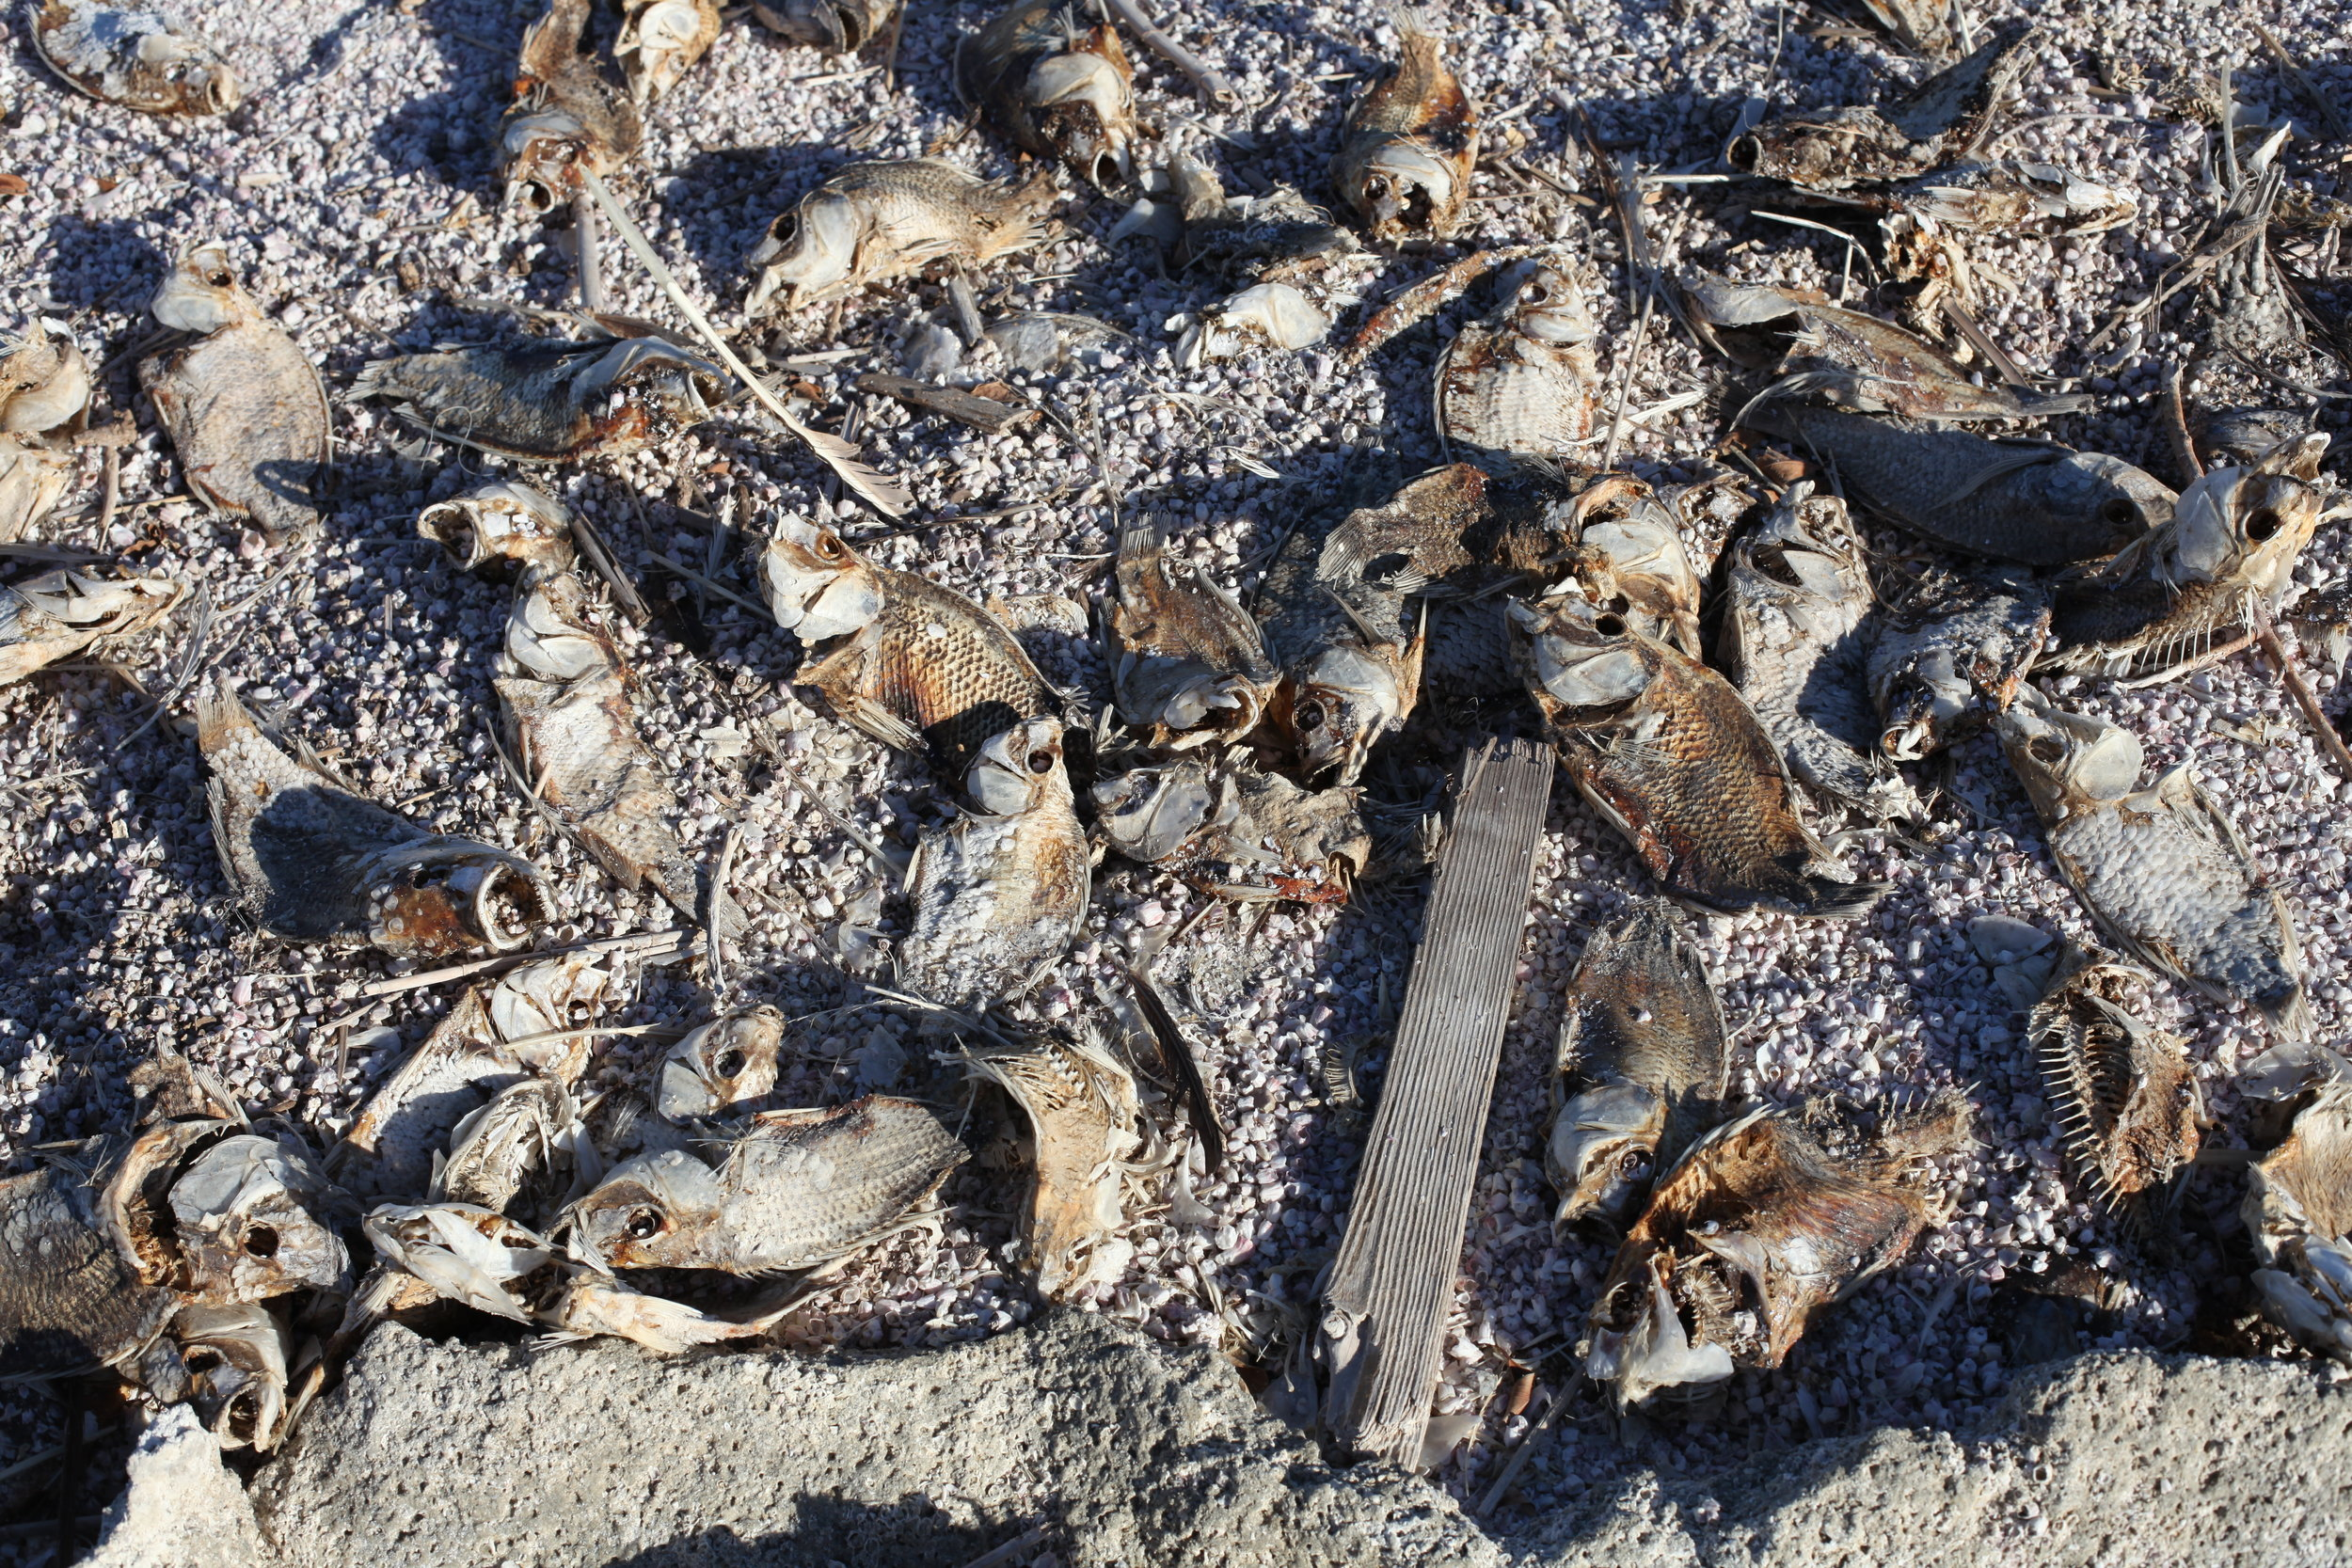 Dead tilapia from a 2013 mass die-off still cover Mecca Beach four years later on Jan. 6, 2017. (Photo by Ethan Jakob Craft.)